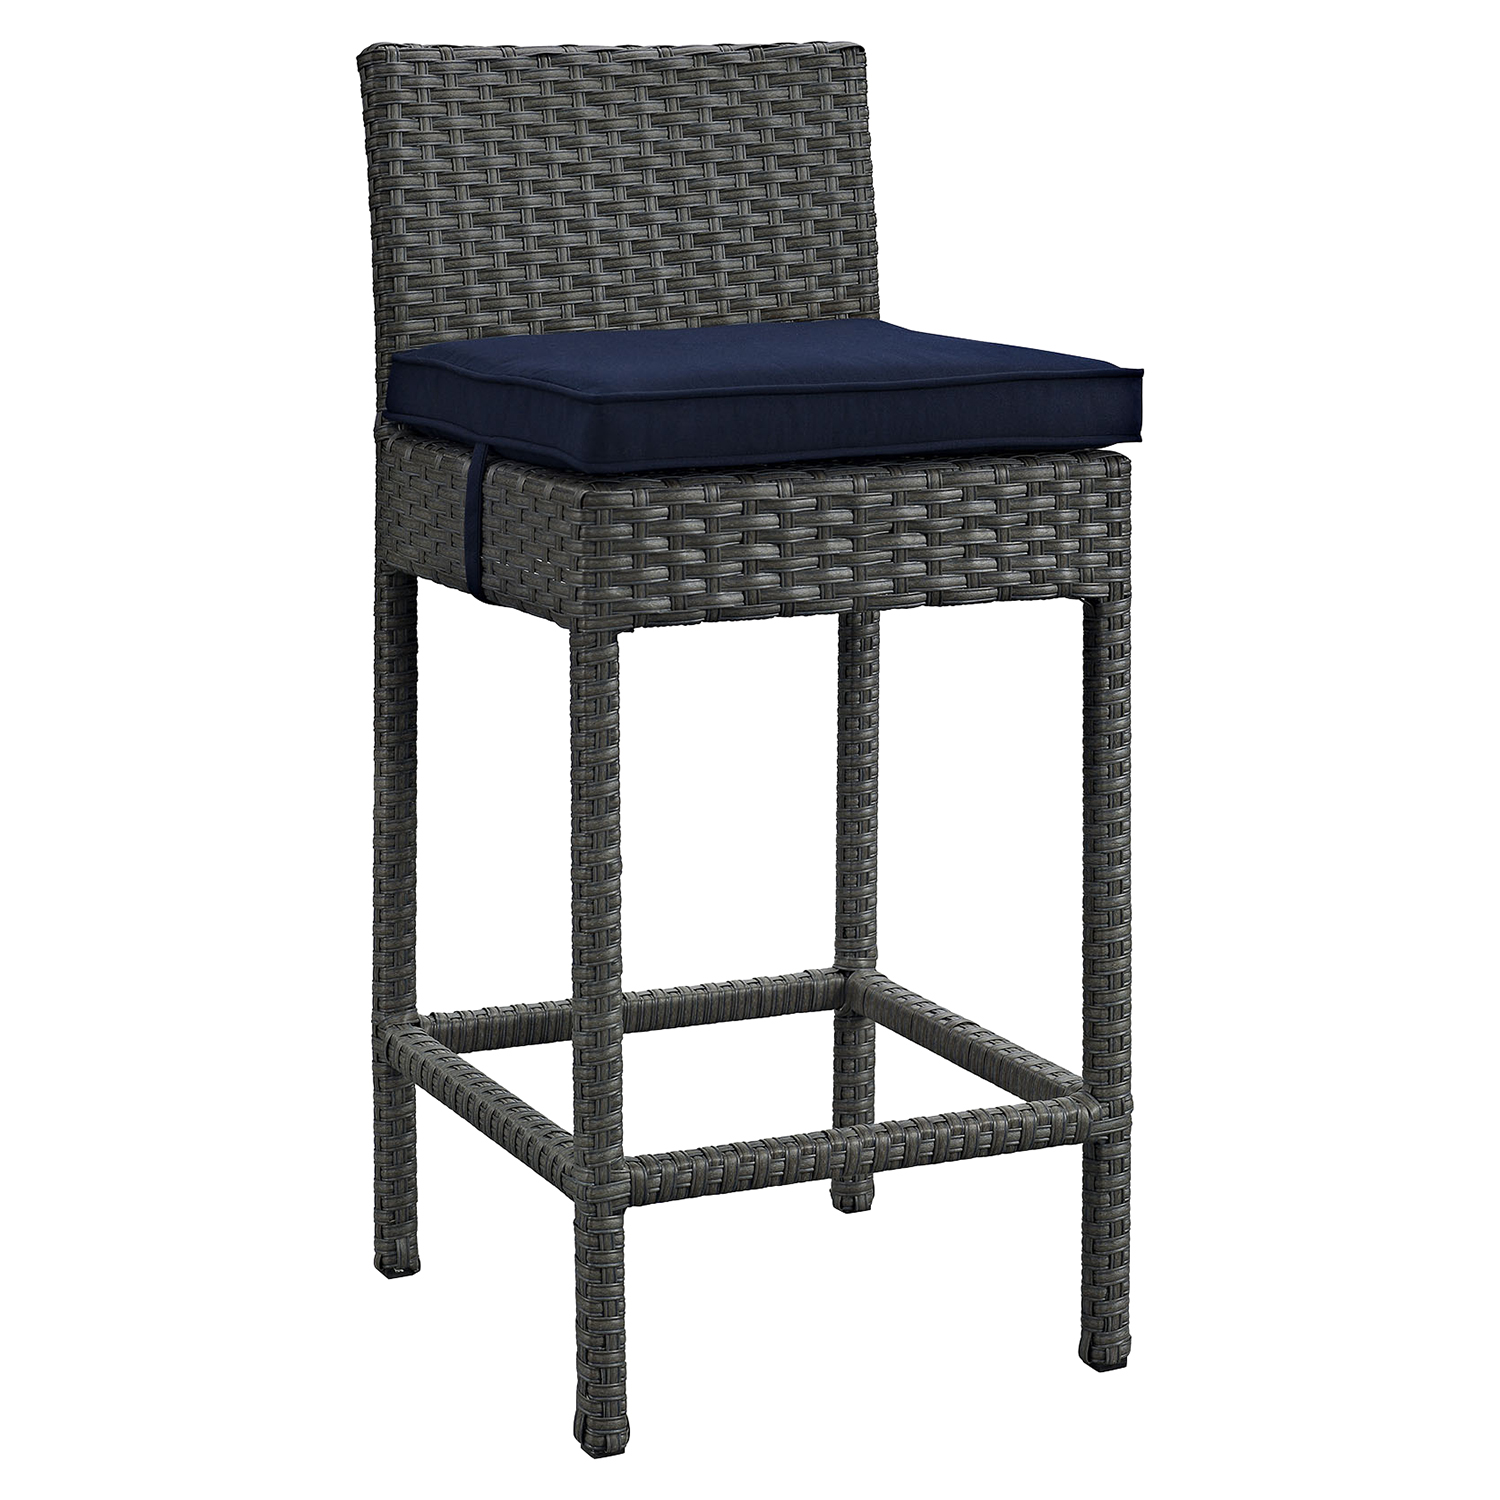 Sojourn Outdoor Patio Wicker Bar Stool - Sunbrella Canvas Navy (Set of 4) - EEI-2196-CHC-NAV-SET